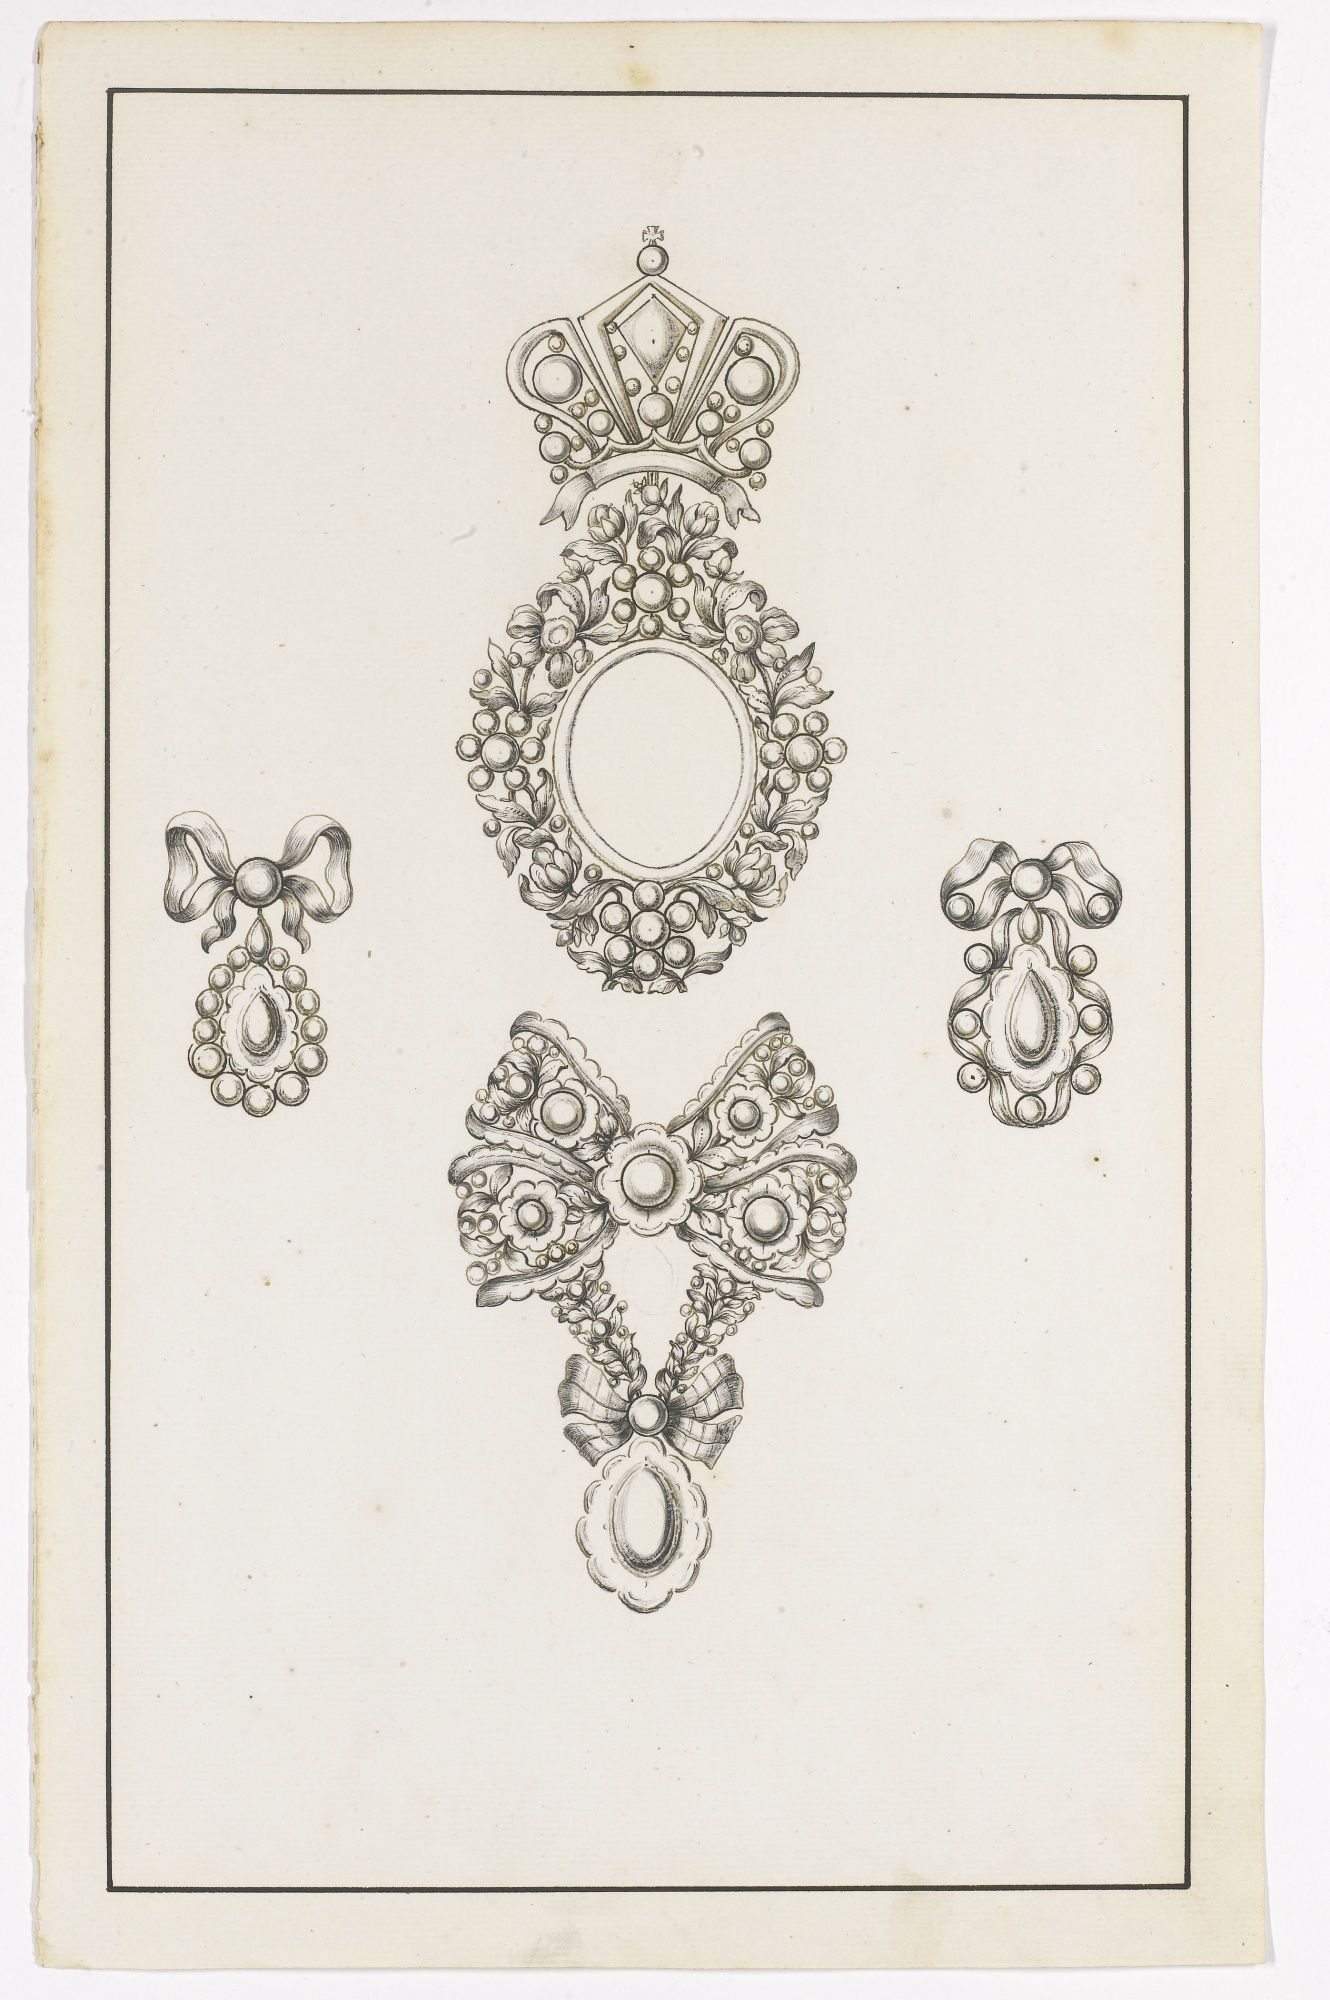 Collection Of Twenty Three Jewellery Designs On Twenty Two Sheets Second Half Of The 18th Century Antique Jewellery Designs Jewellery Sketches Jewelry Drawing